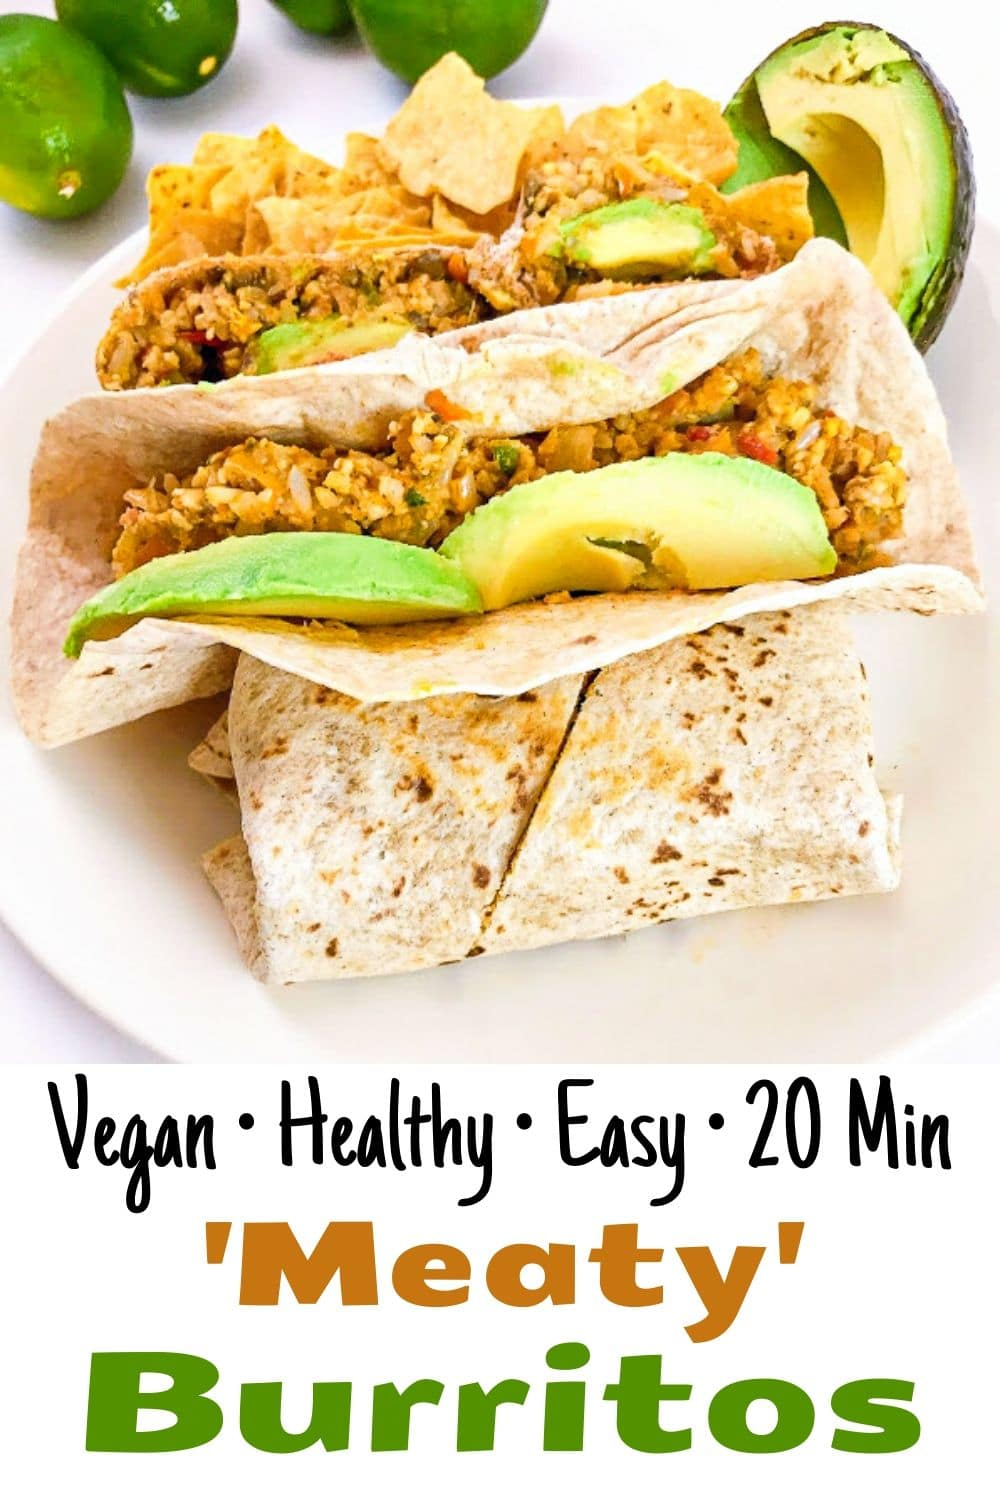 quick and easy vegan healthy meaty burritos for pinterest